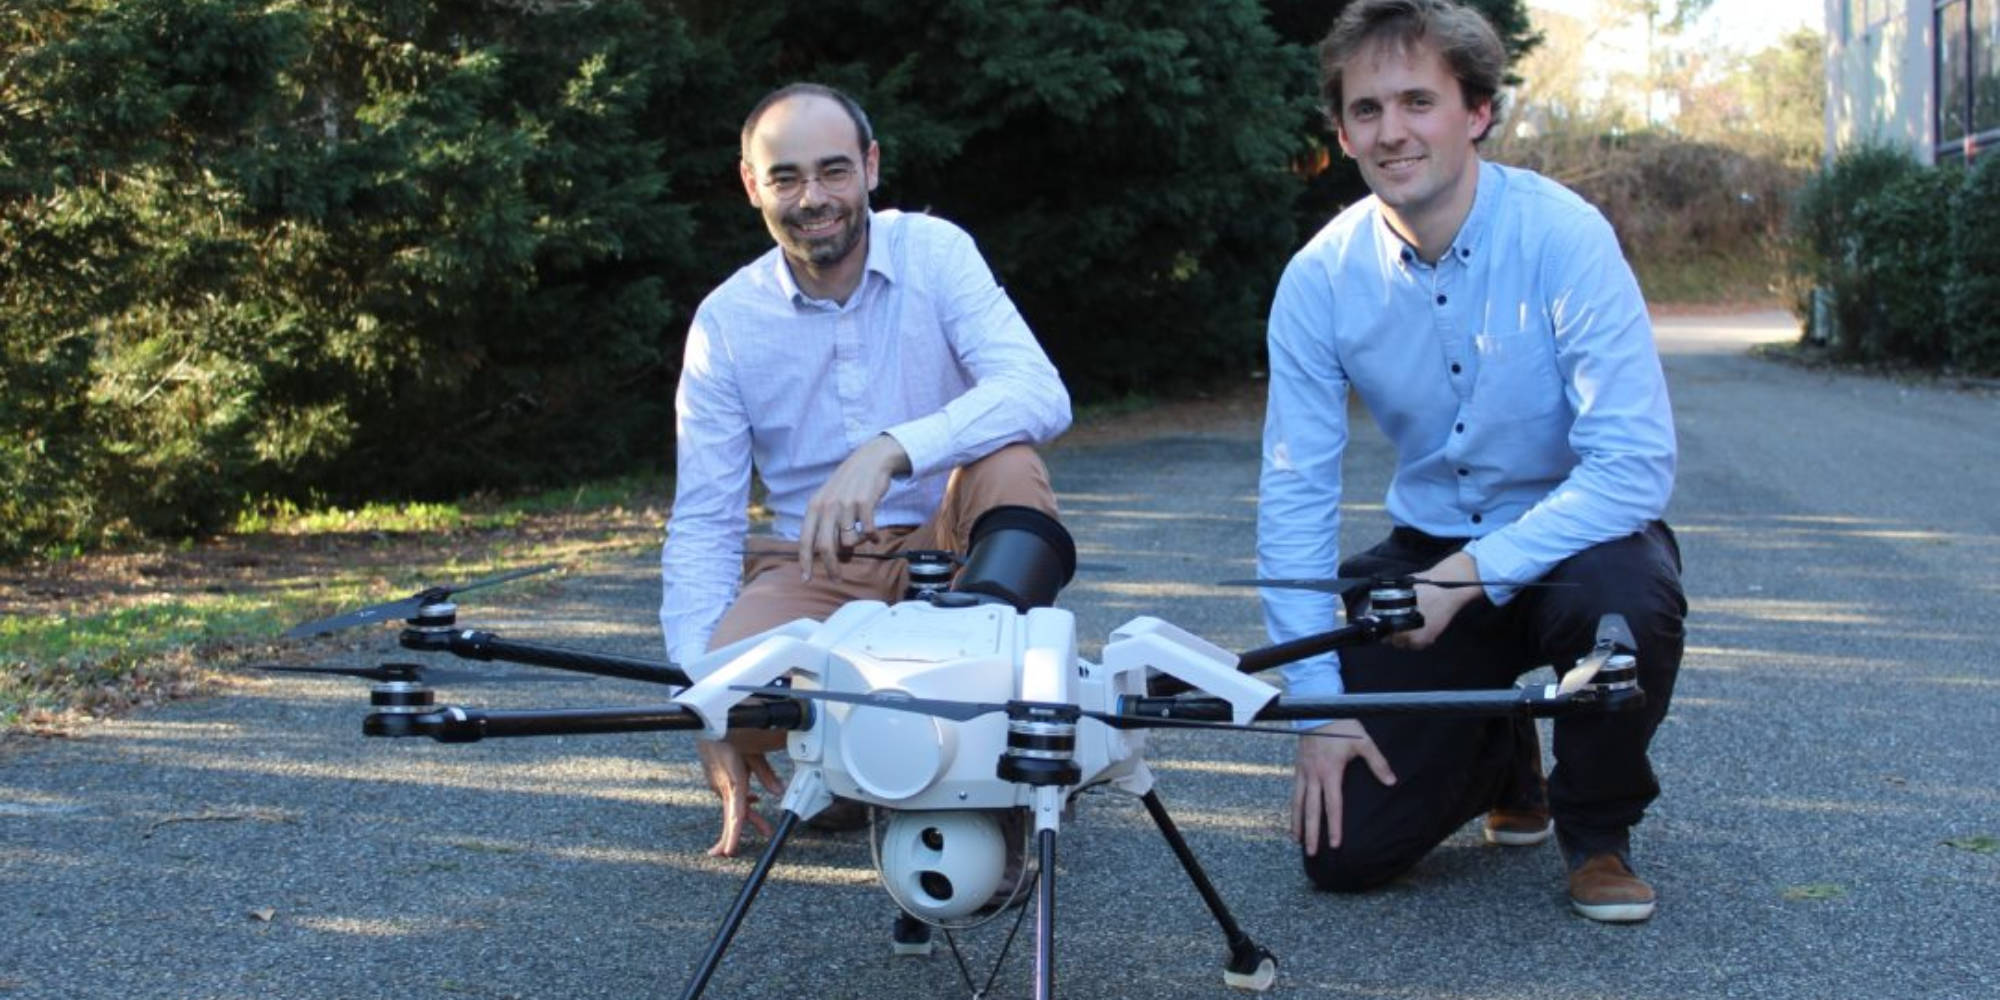 Tethered drone manufacturer Elistair has opened up its first North American office in Boston, US, in an effort to accelerate its platform's growth.